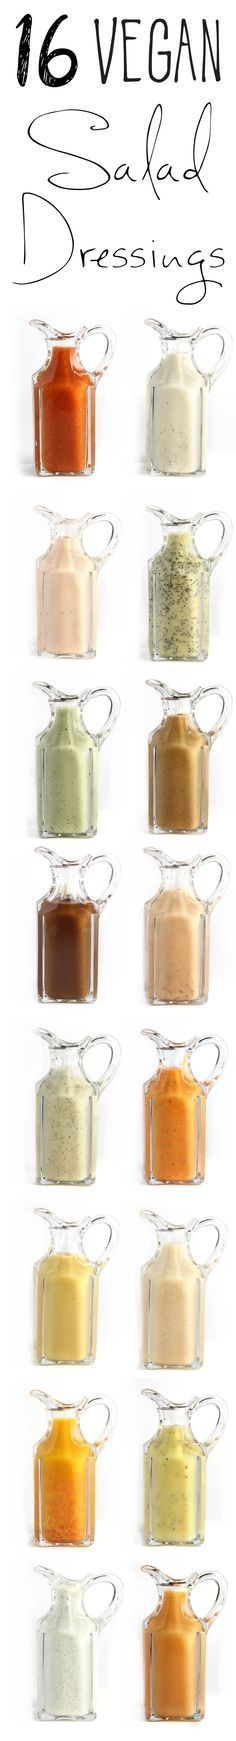 16 vegane Salatdressings